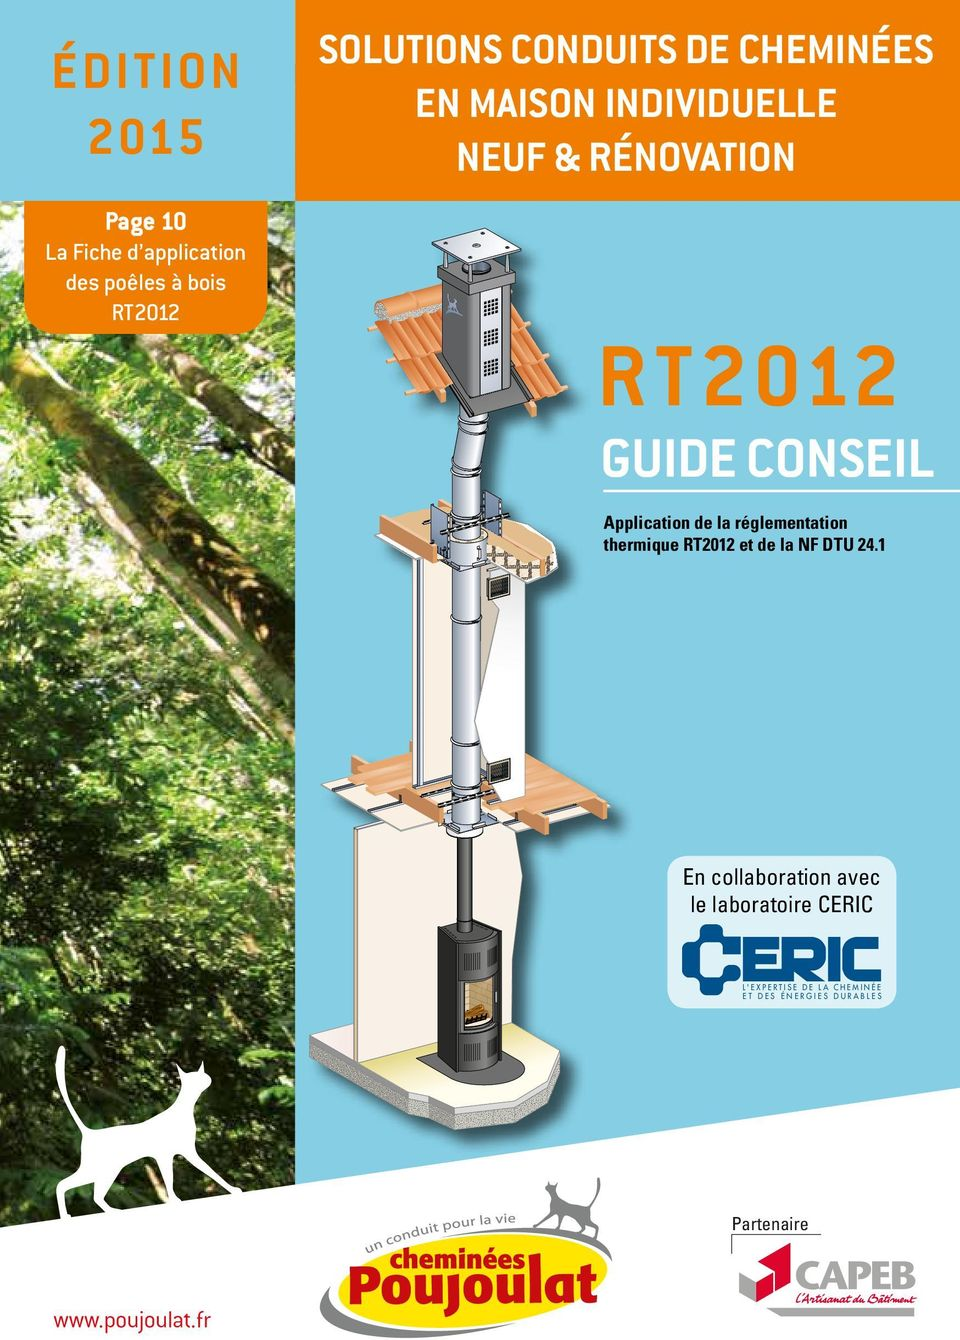 Rt2012 guide conseil dition 2015 solutions conduits de - Nf dtu 24 1 ...